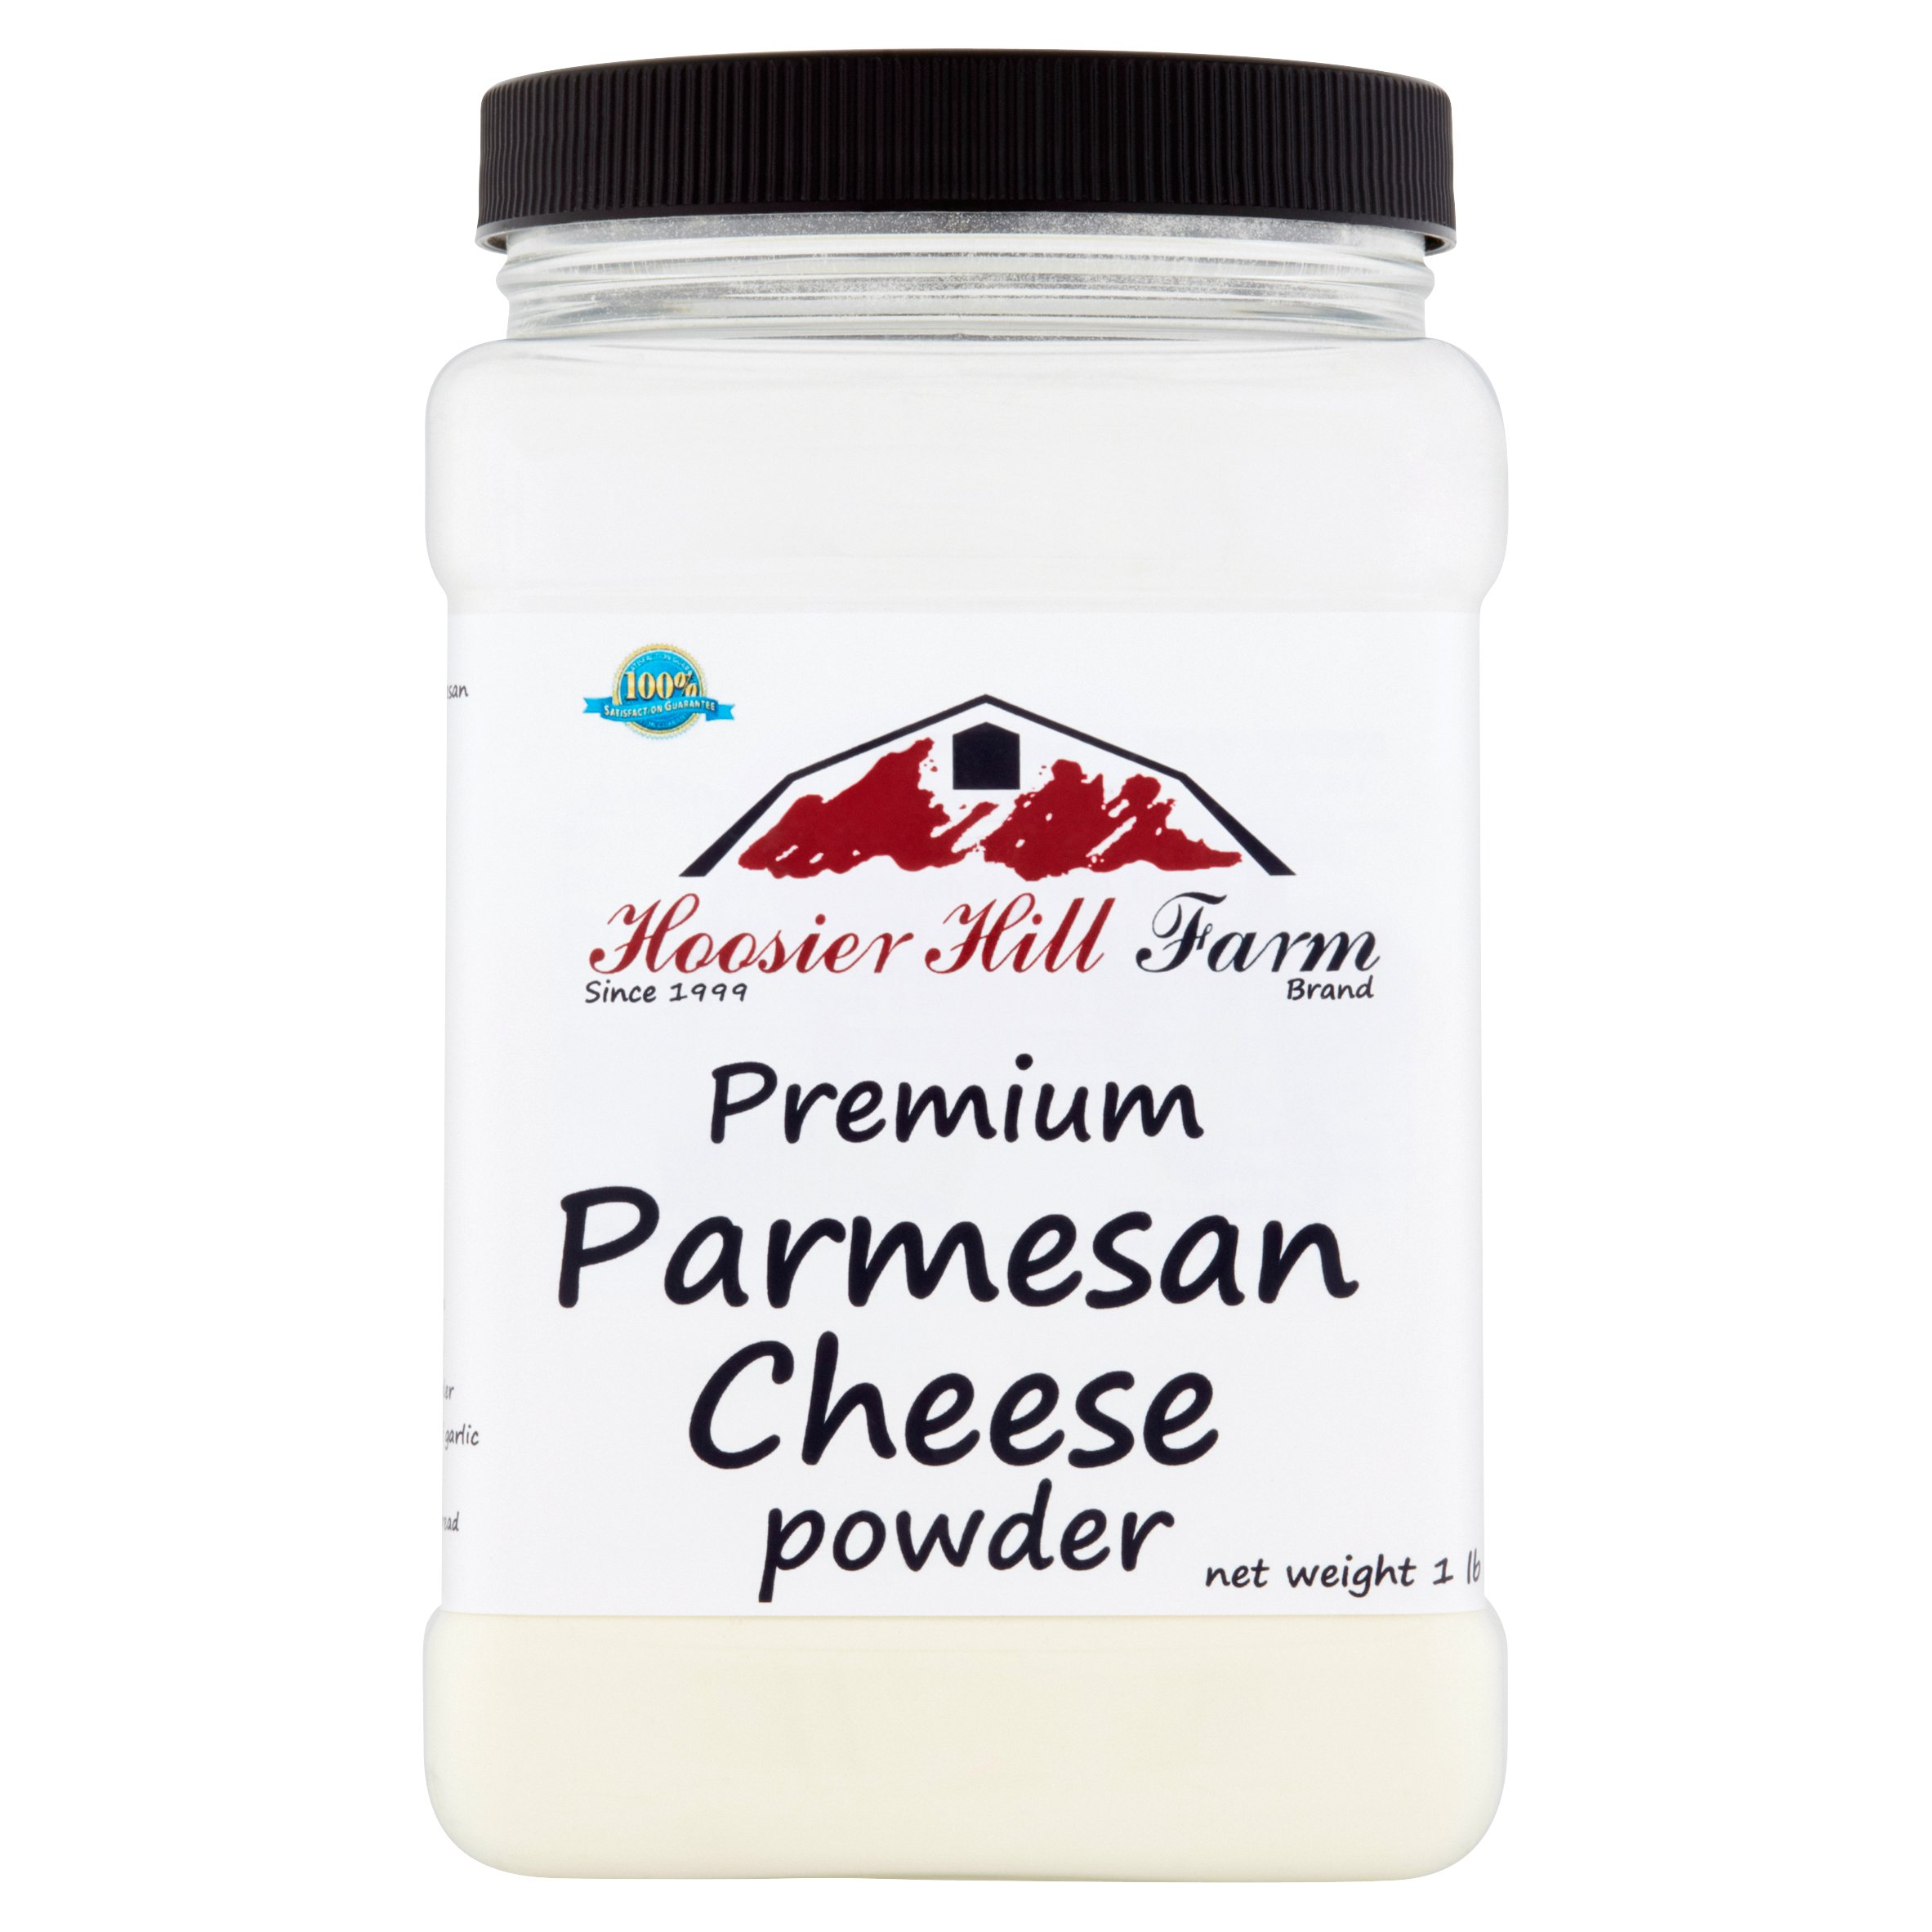 Hoosier Hill Farm Premium Parmesan Cheese Powder 1lb by Hoosier Hill Farm